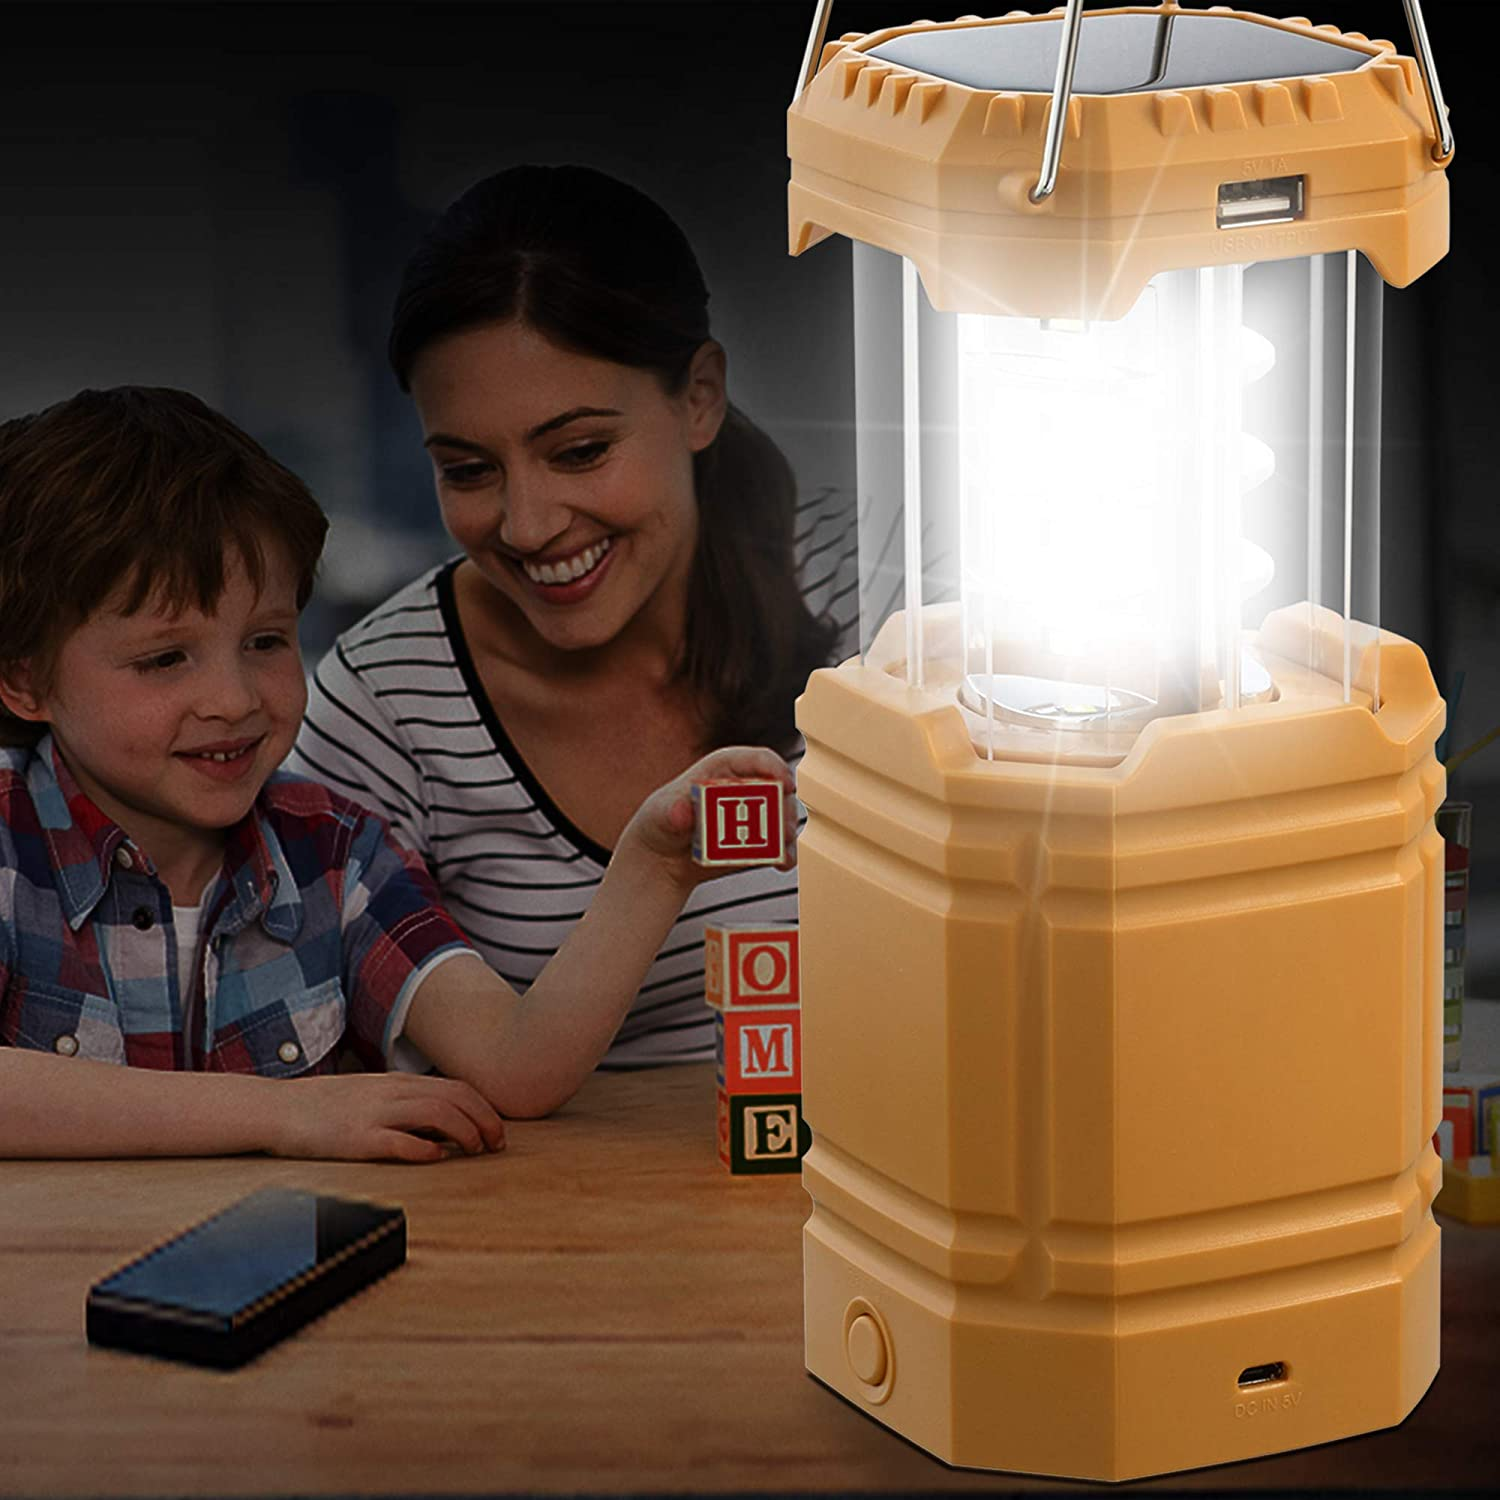 Hand Crank Solar Camping Lanterns Flashlight, Portable Emergency Camping Light, (DC 5V) 3000mAh Rechargeable Power Bank for Phone Charger, Survival Kits for Hurricane Hiking Fishing Home Power Failure